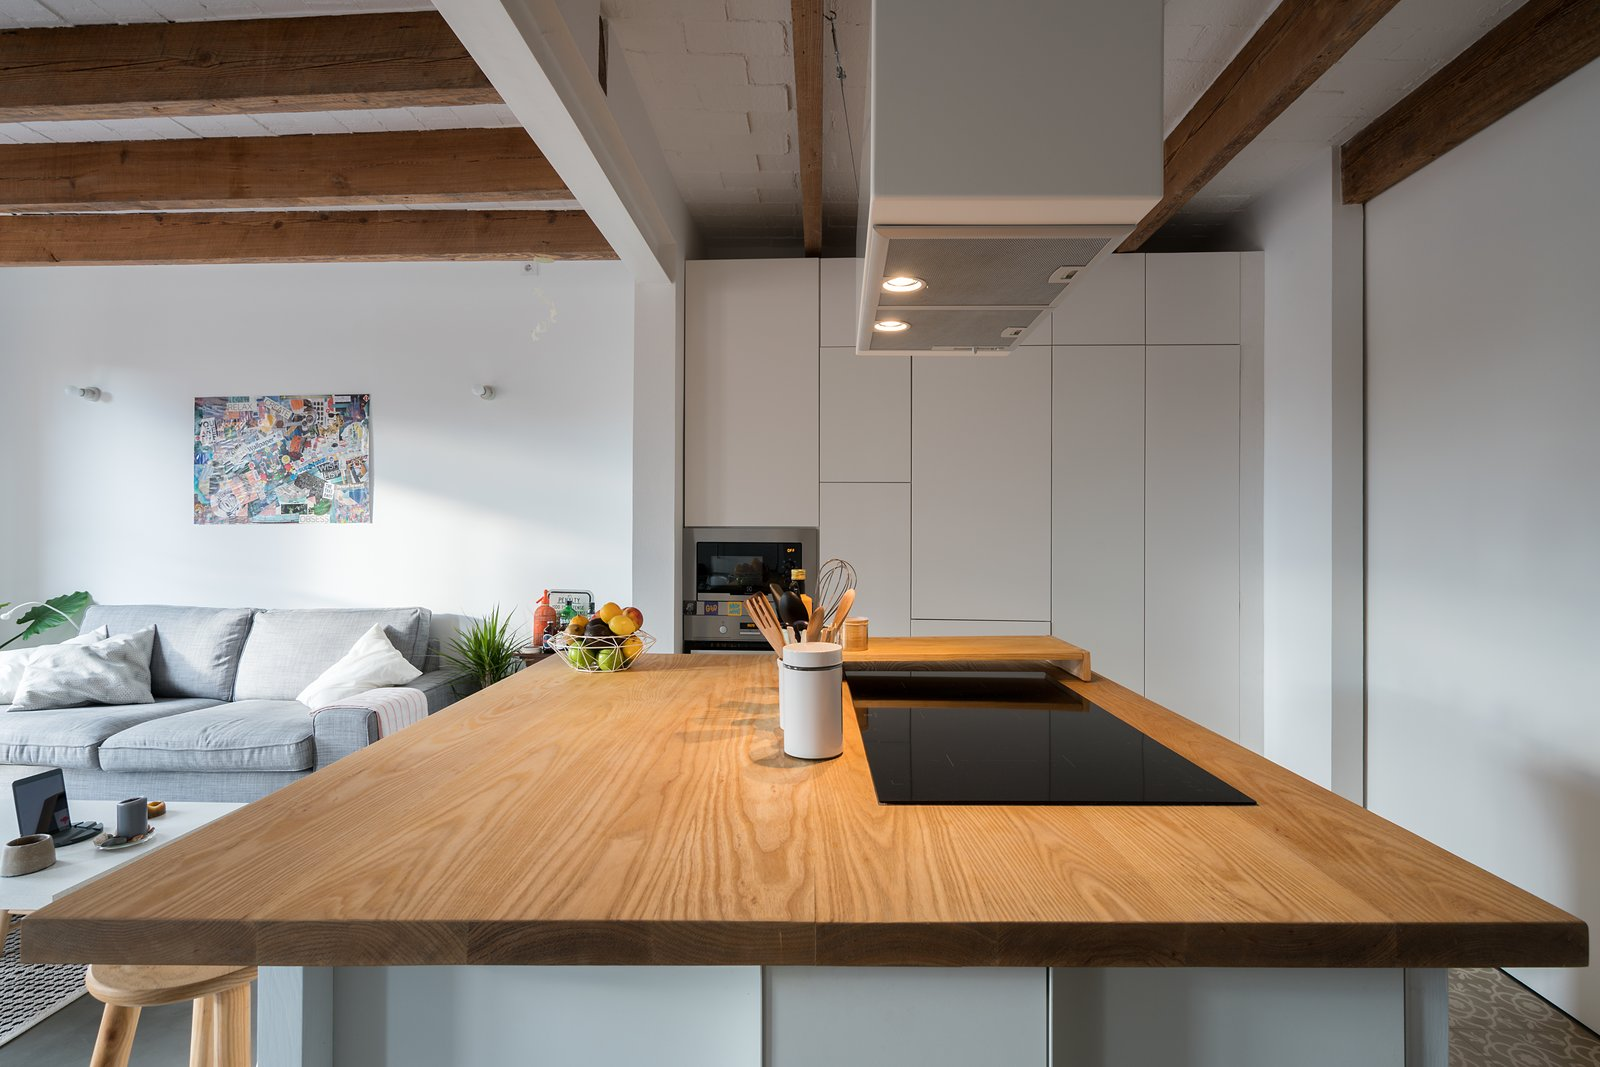 Kitchen, Ceramic Tile Floor, White Cabinet, Wood Cabinet, and Wood Counter Kitchen Table  Old Town Refurbishment by Habitan Architects